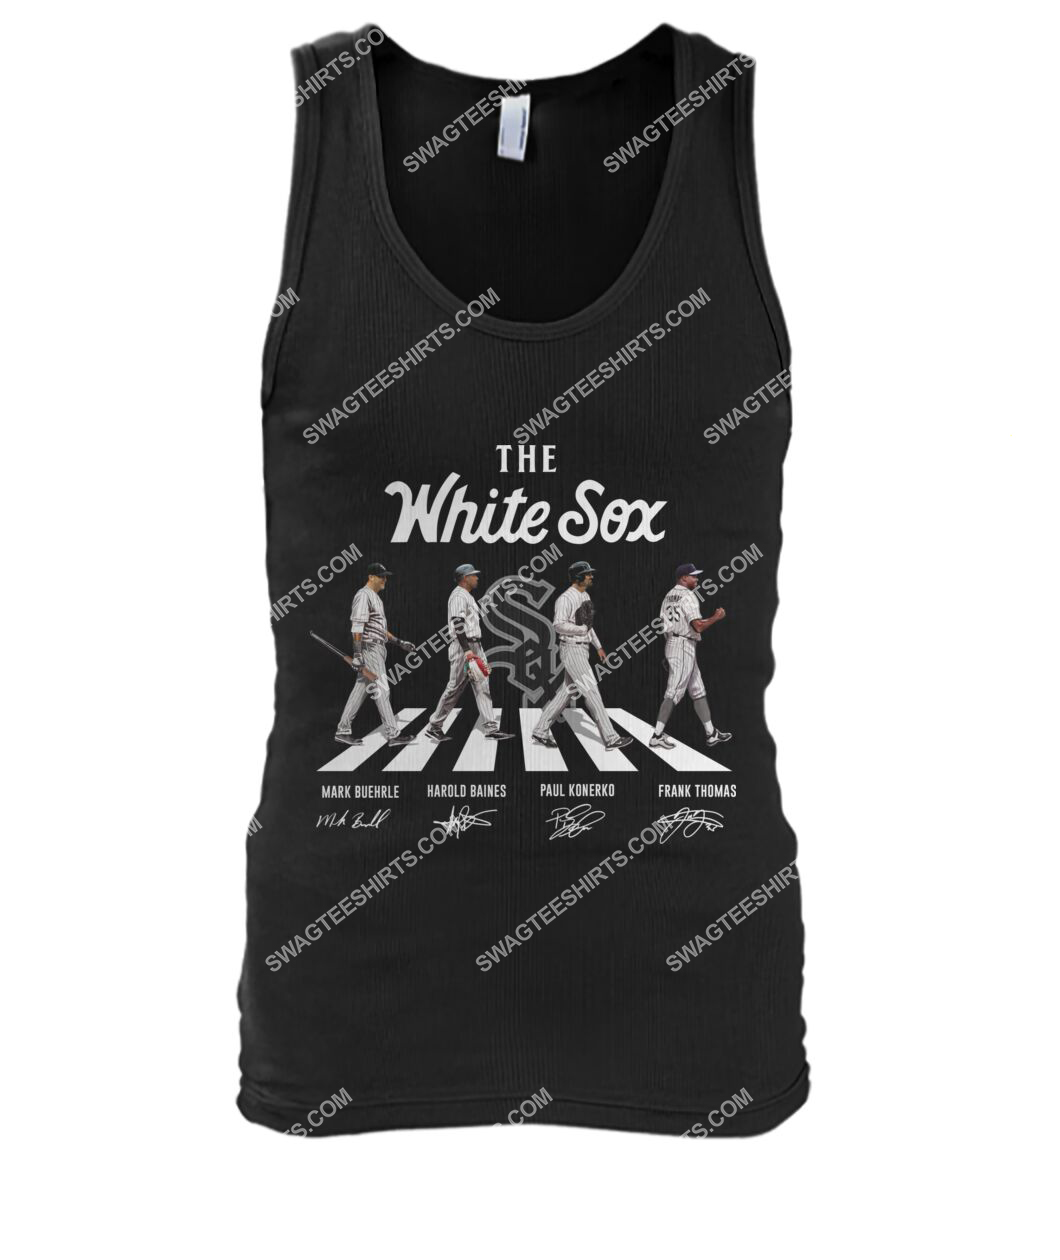 the chicago white sox walking abbey road tank top 1